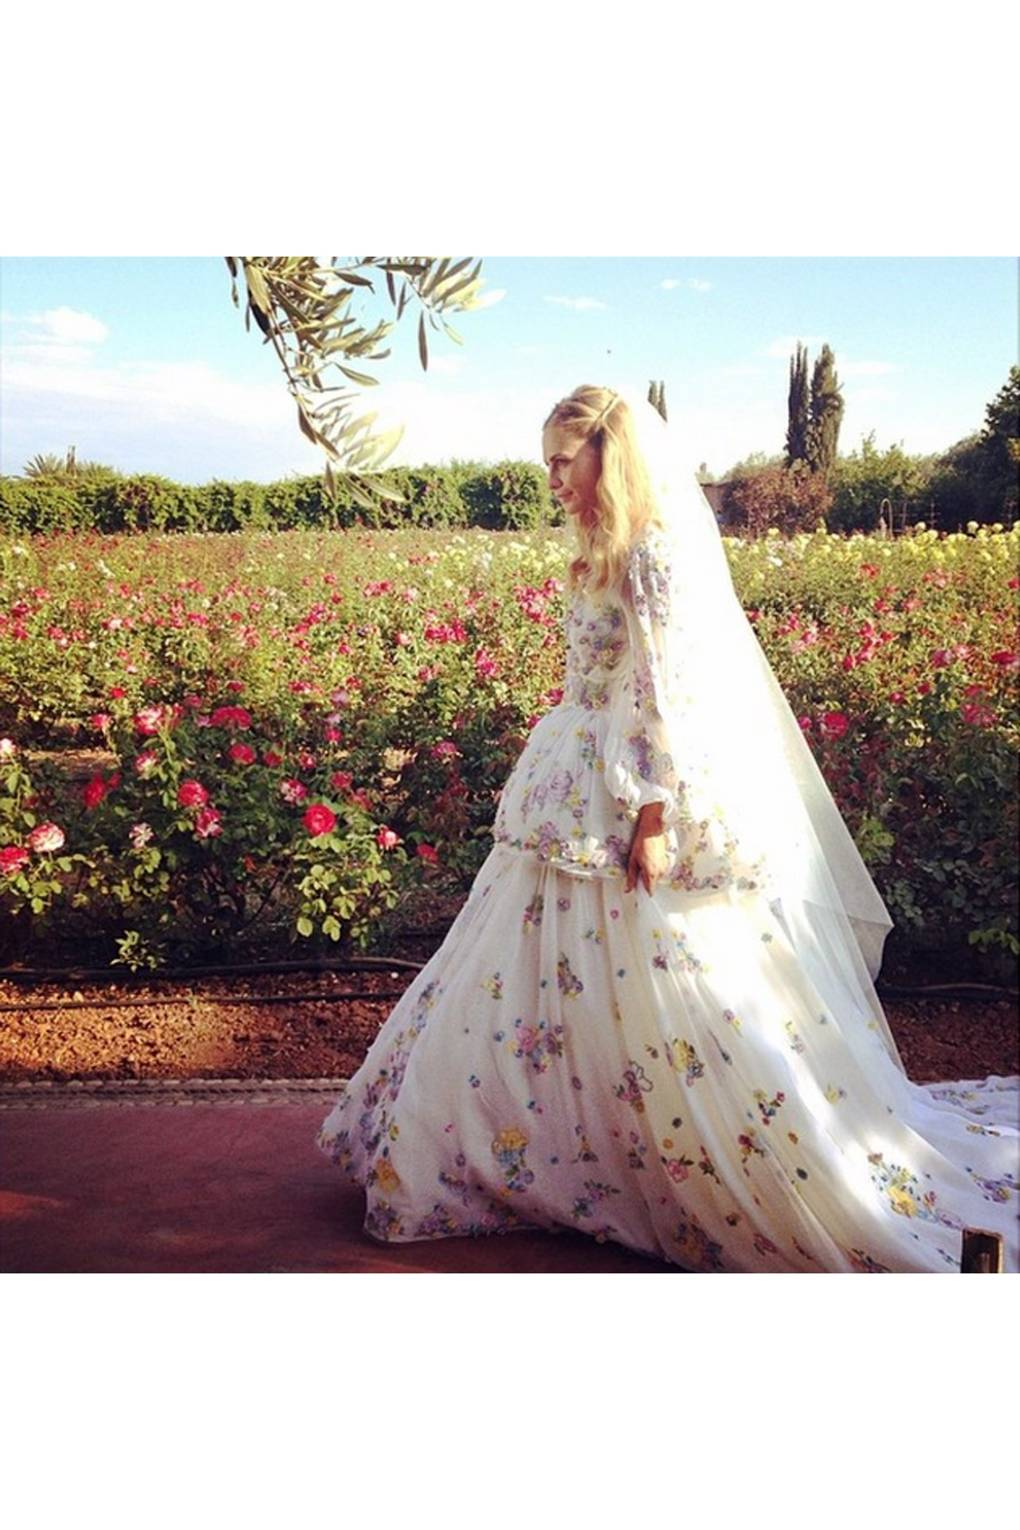 d51b97a25ecb The Rise Of The Instagram Wedding | British Vogue